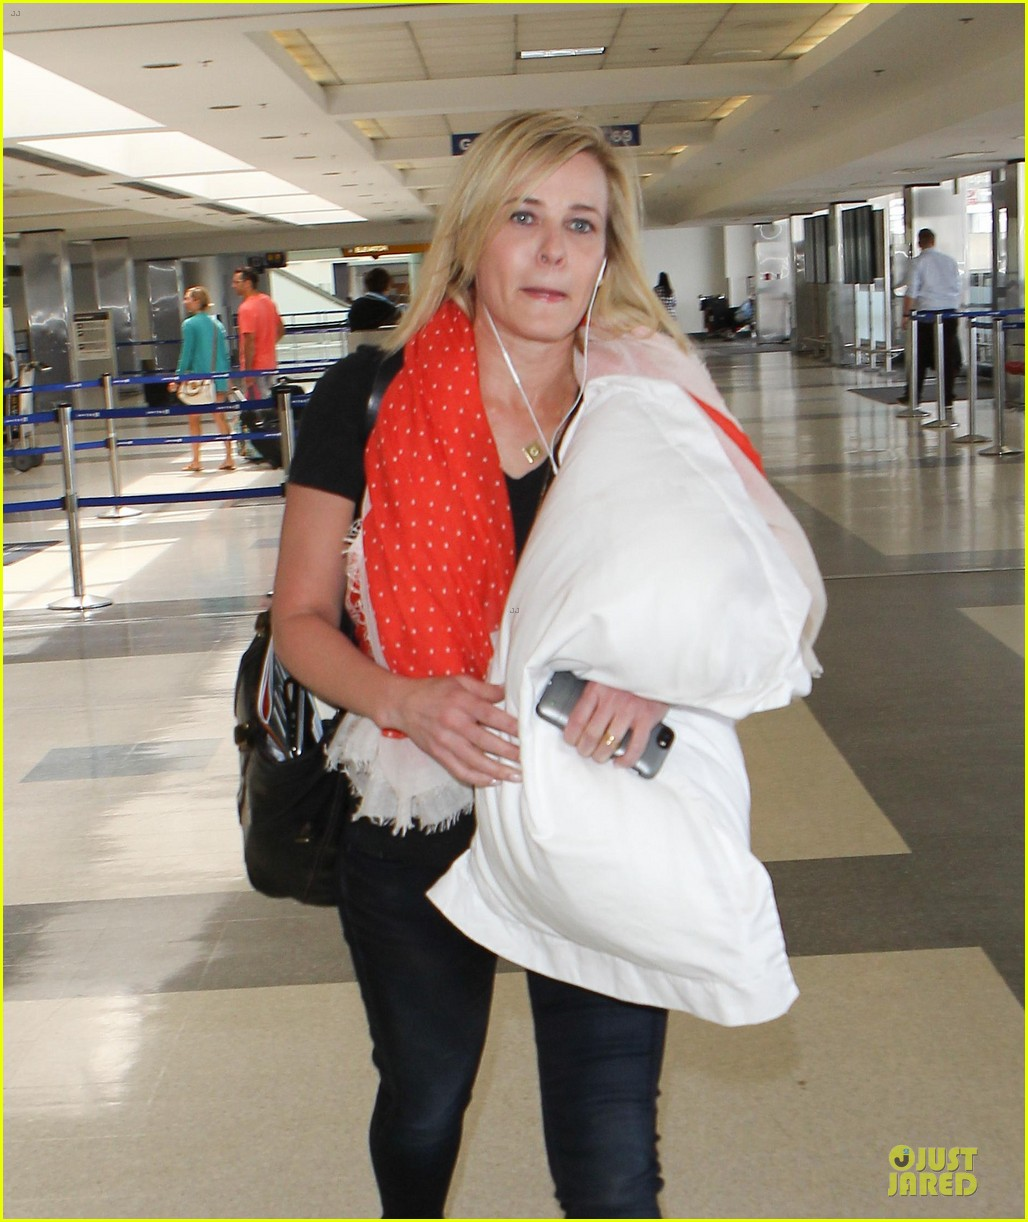 chelsea handler lax departure as comfy as possible 093145189